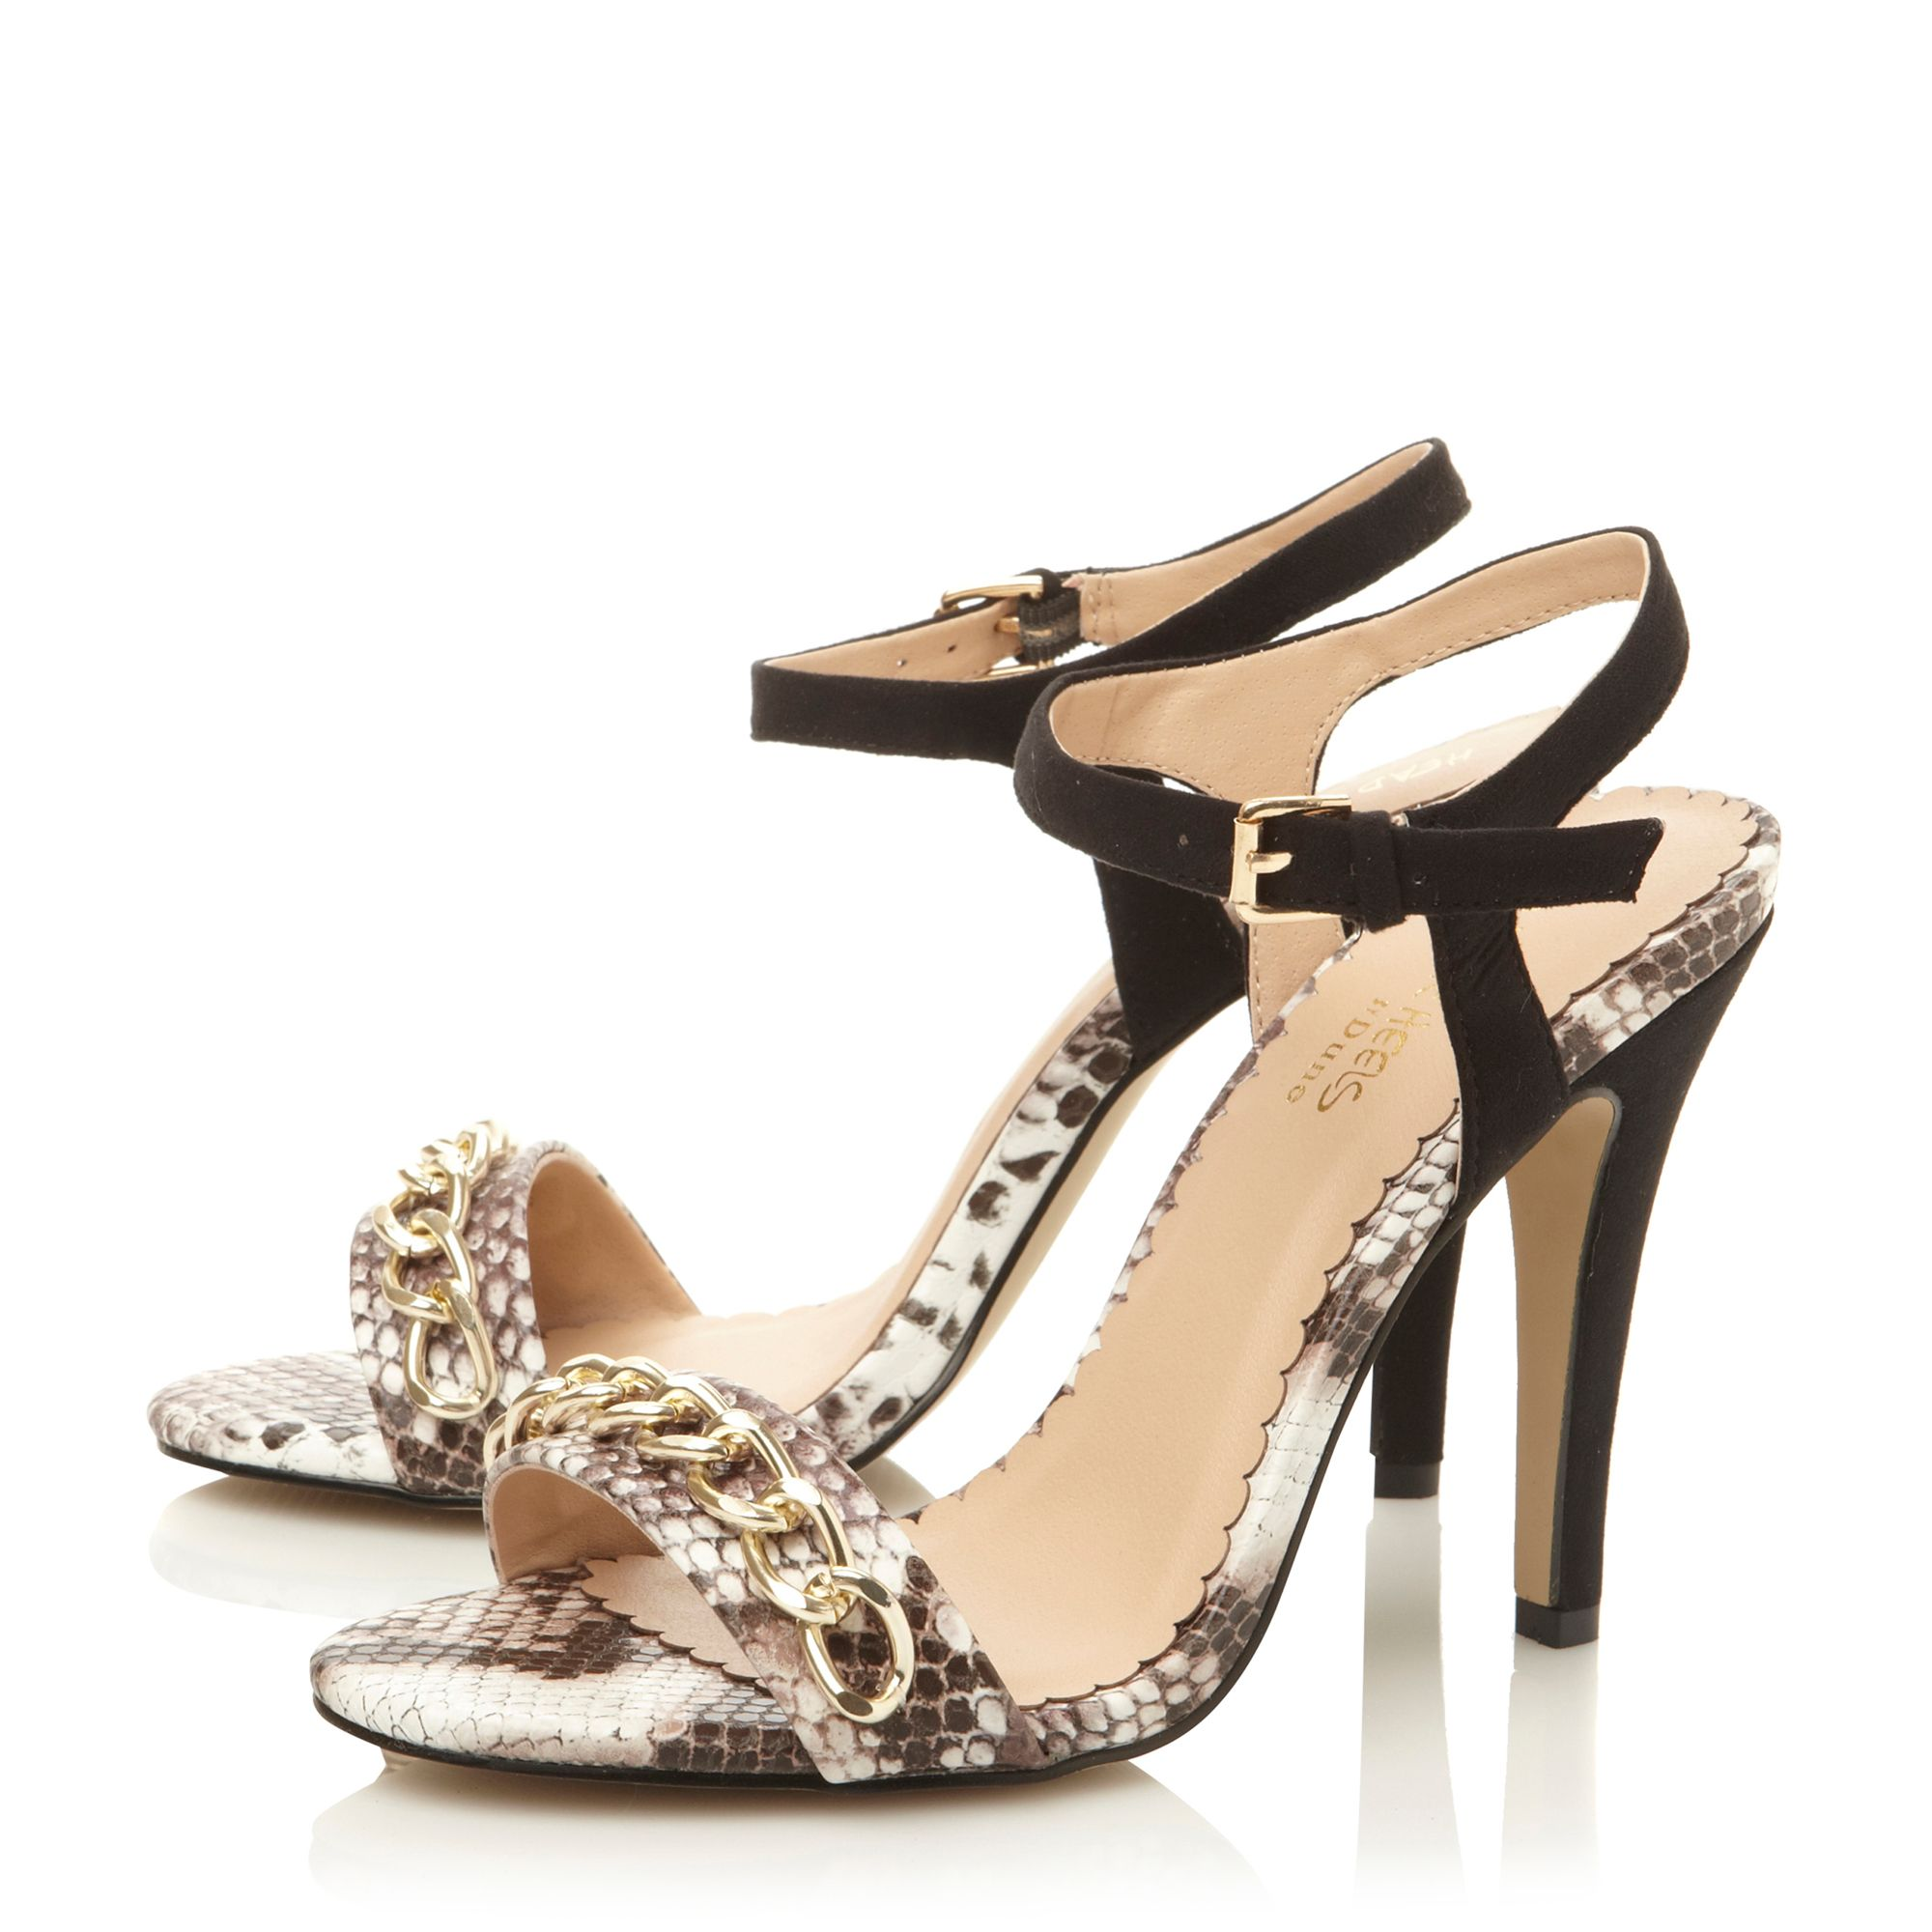 Hailee chain detail stiletto sandals